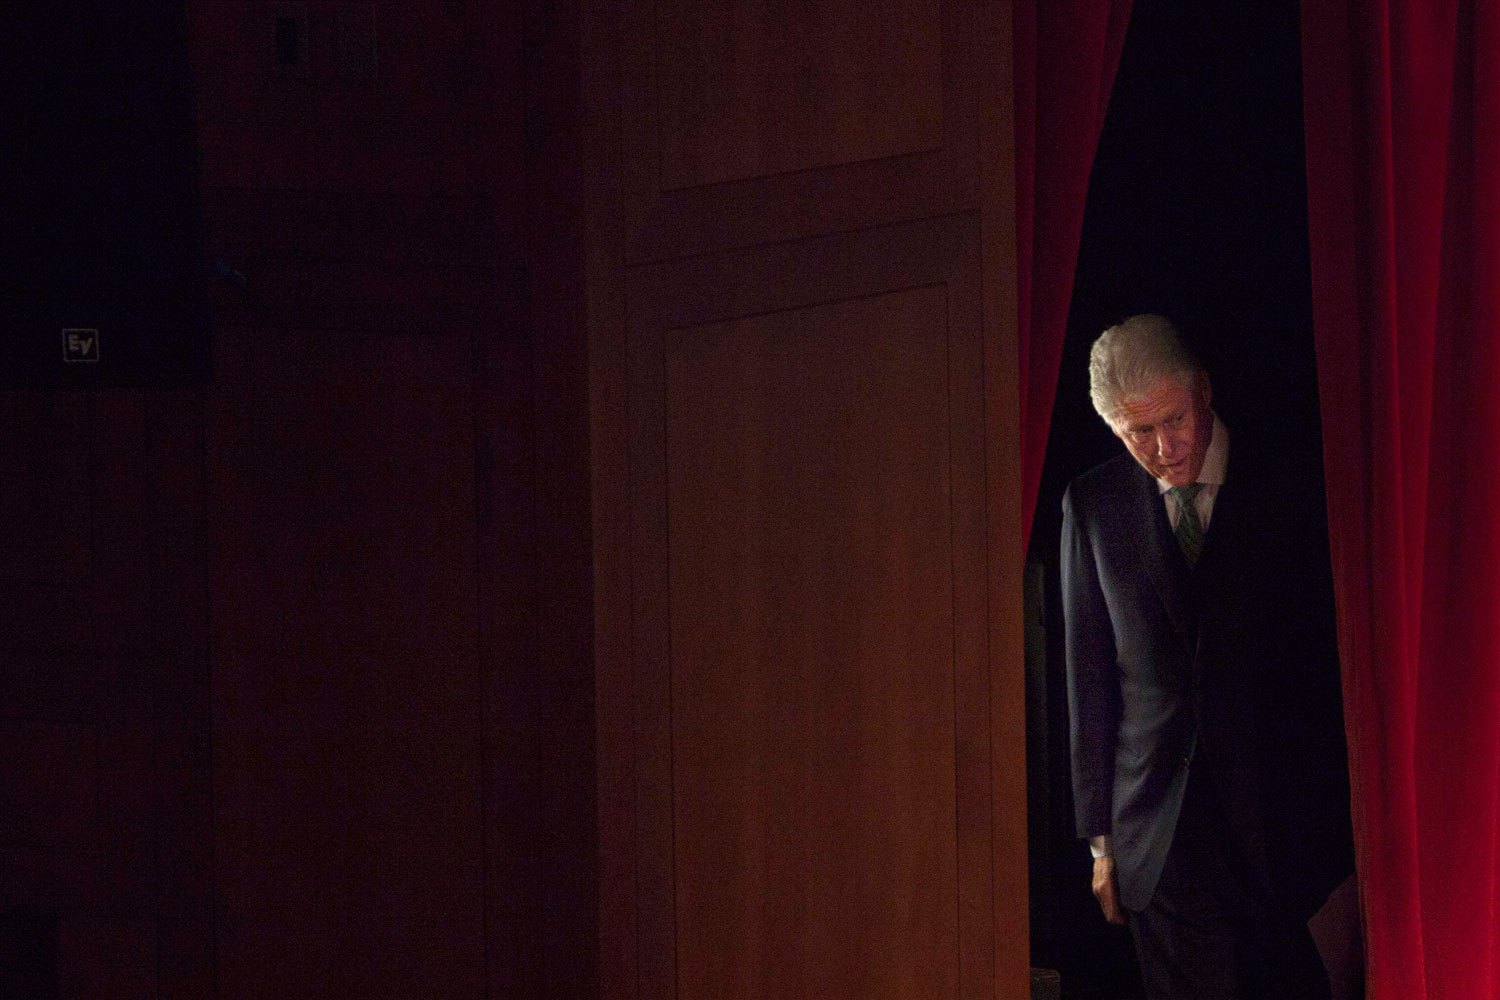 February 9, 2012. Former U.S. President Bill Clinton waits backstage before addressing the crowd at the Invest In Ireland forum at New York University in New York City.